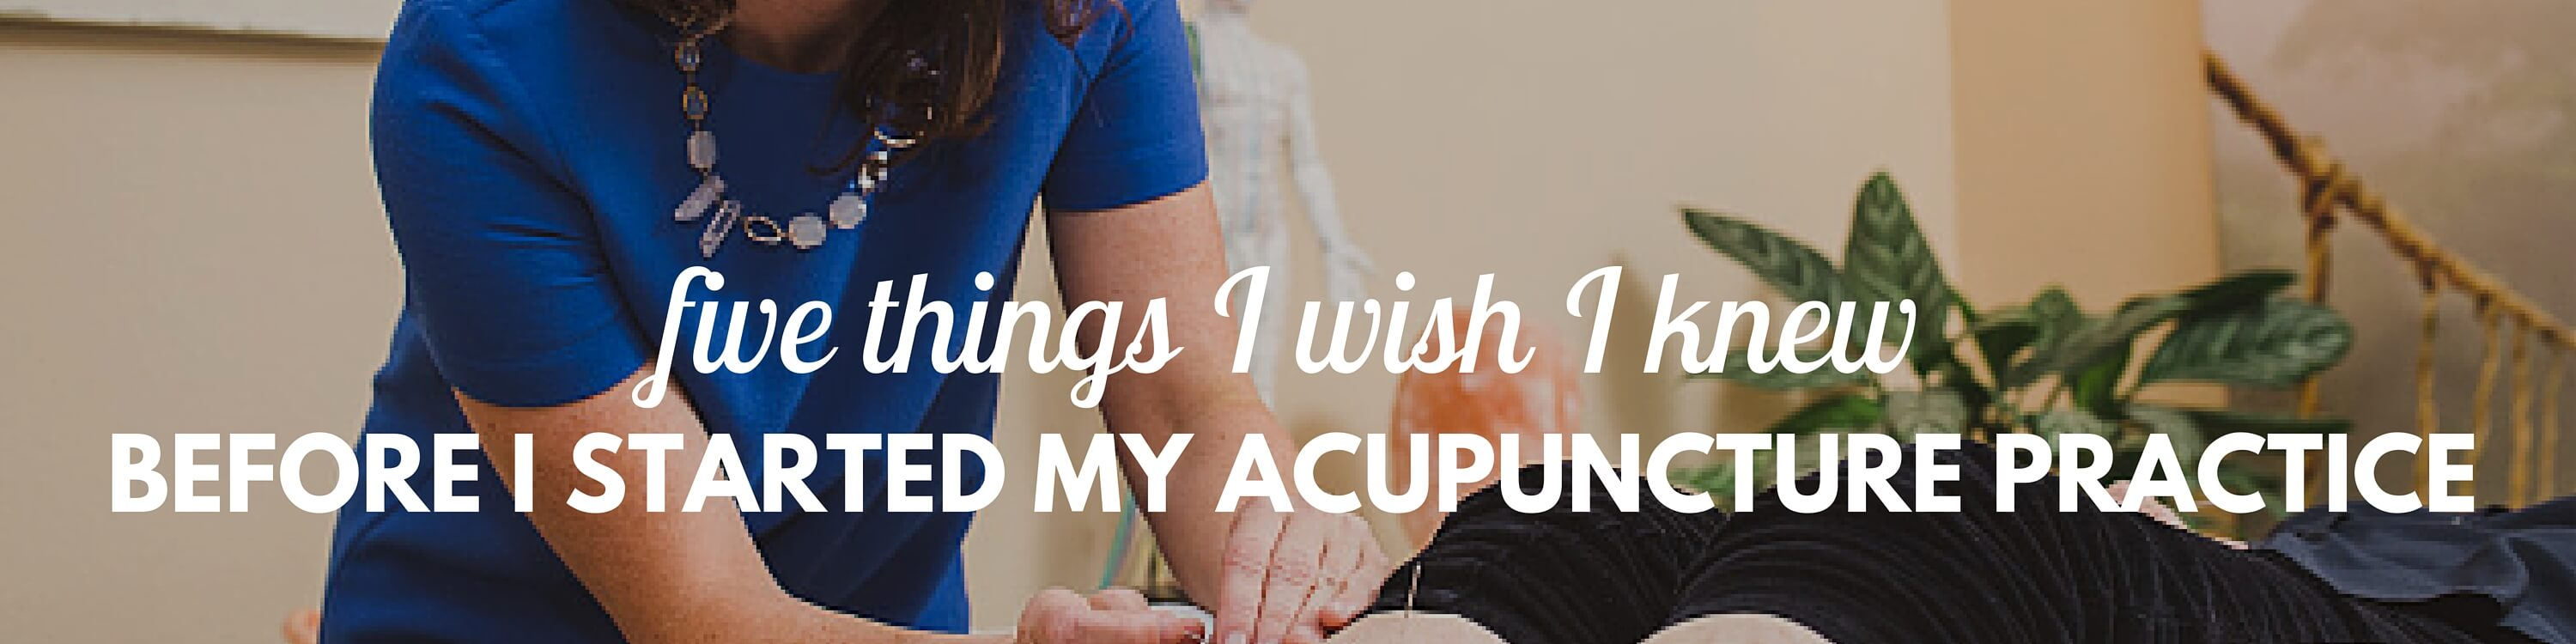 """Quote over a photograph of Katie treating a patient, """"Five things I wish I knew before I started my acupuncture practice""""."""